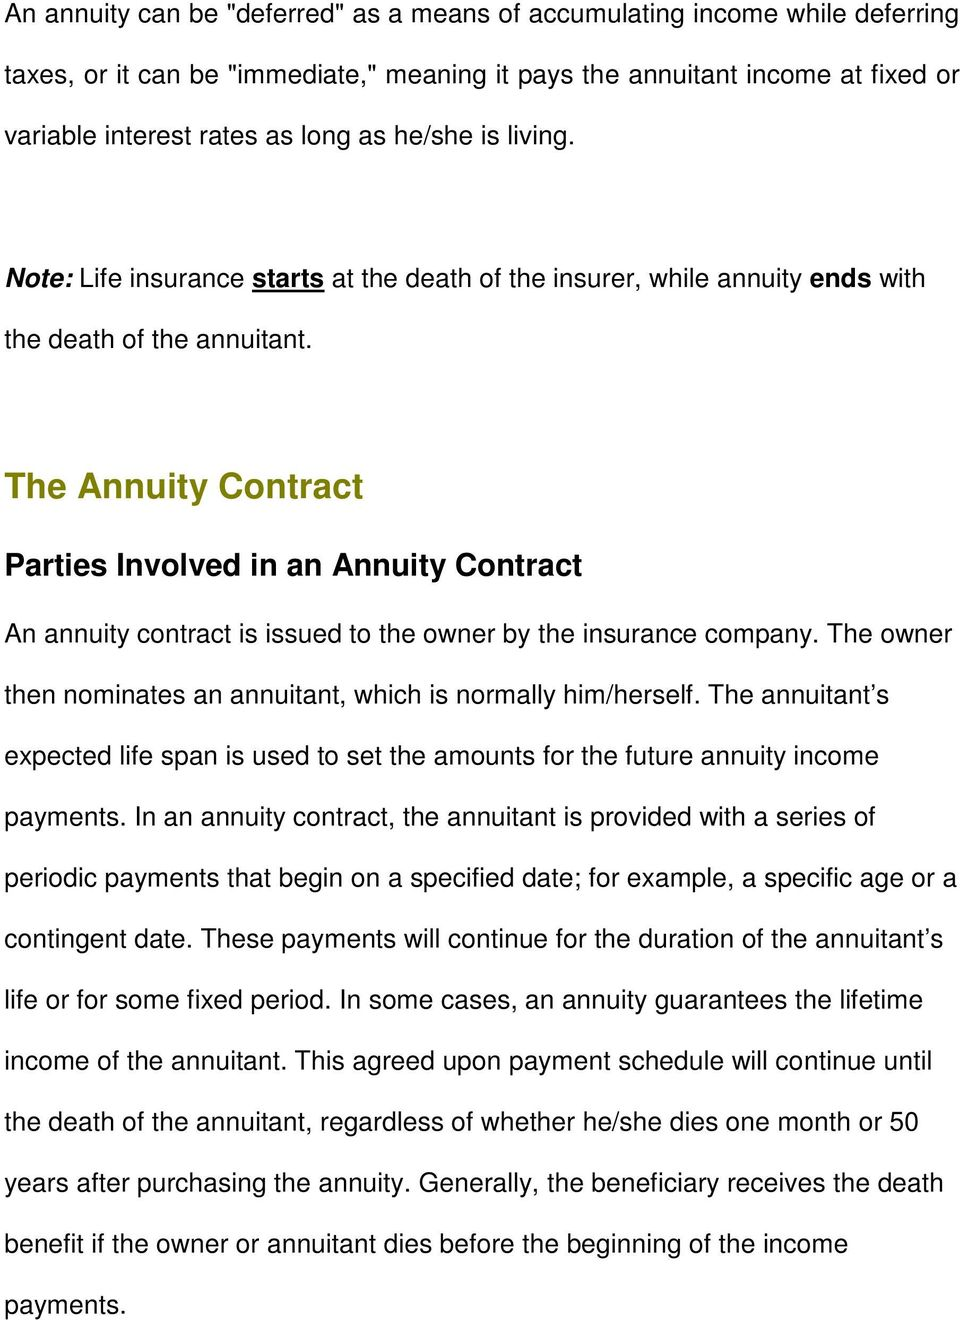 The Annuity Contract Parties Involved in an Annuity Contract An annuity contract is issued to the owner by the insurance company. The owner then nominates an annuitant, which is normally him/herself.